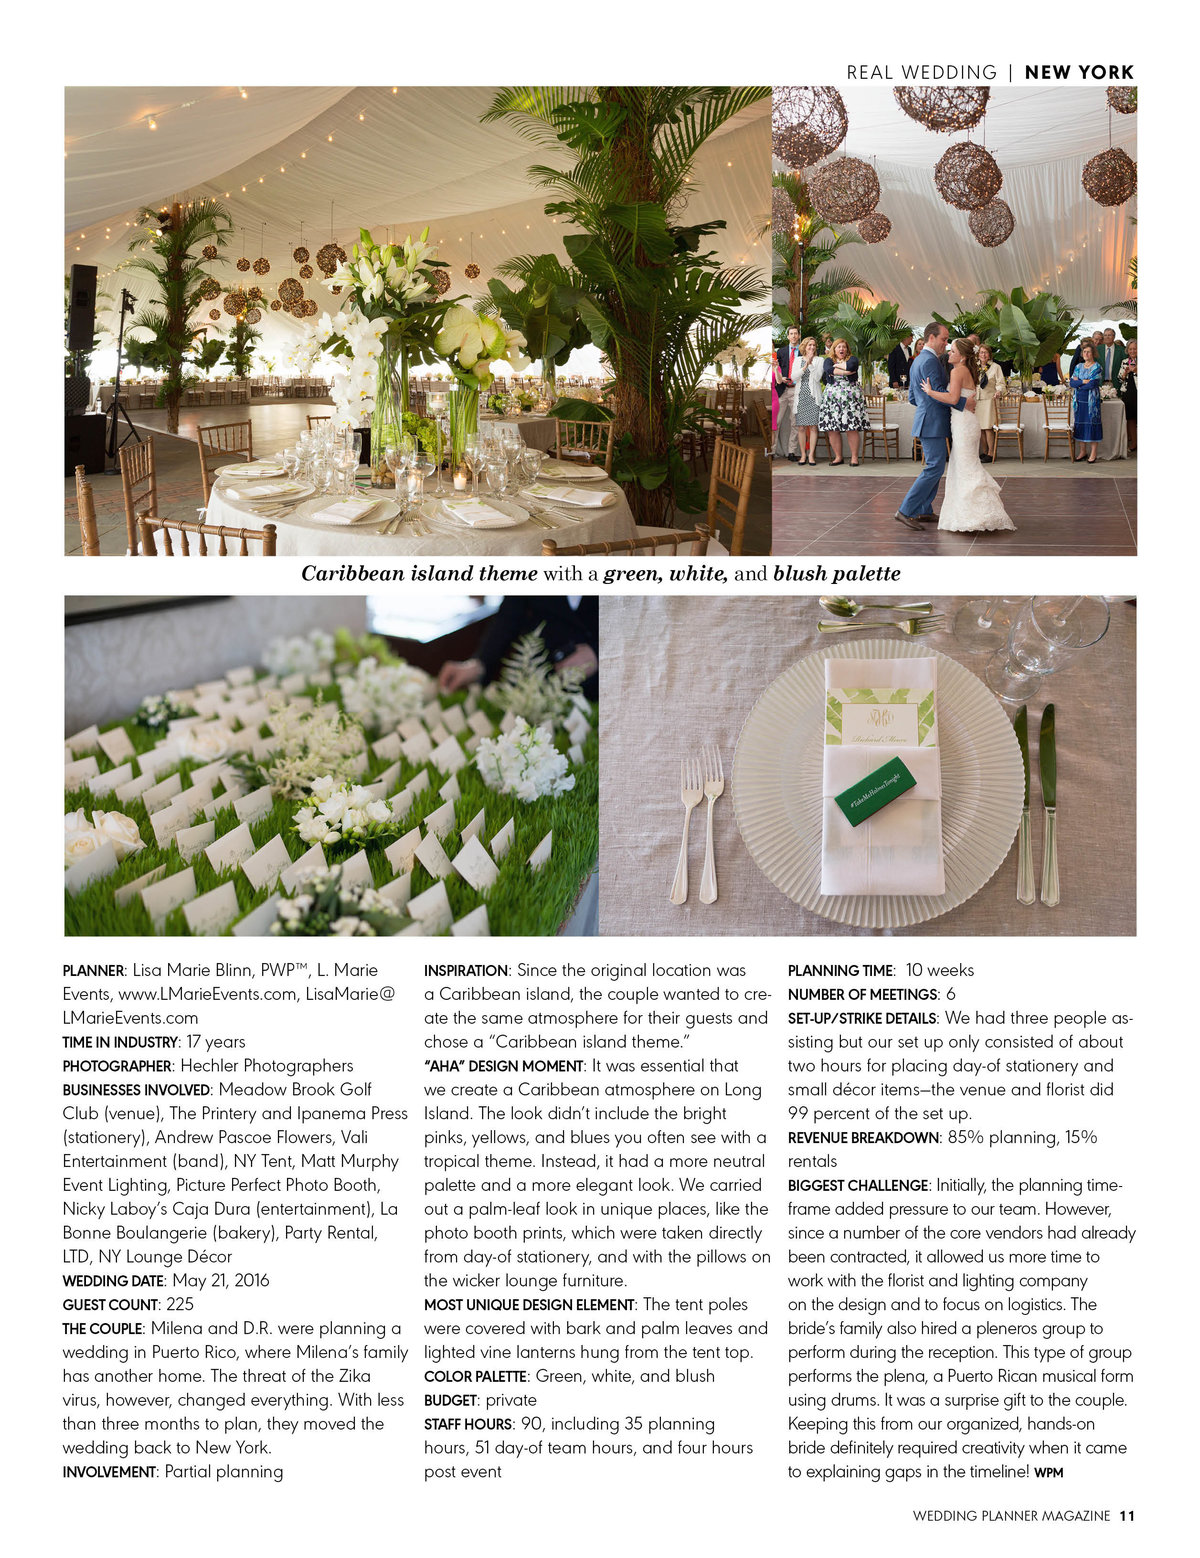 Wedding Planner Magazine May-June 2017 Article